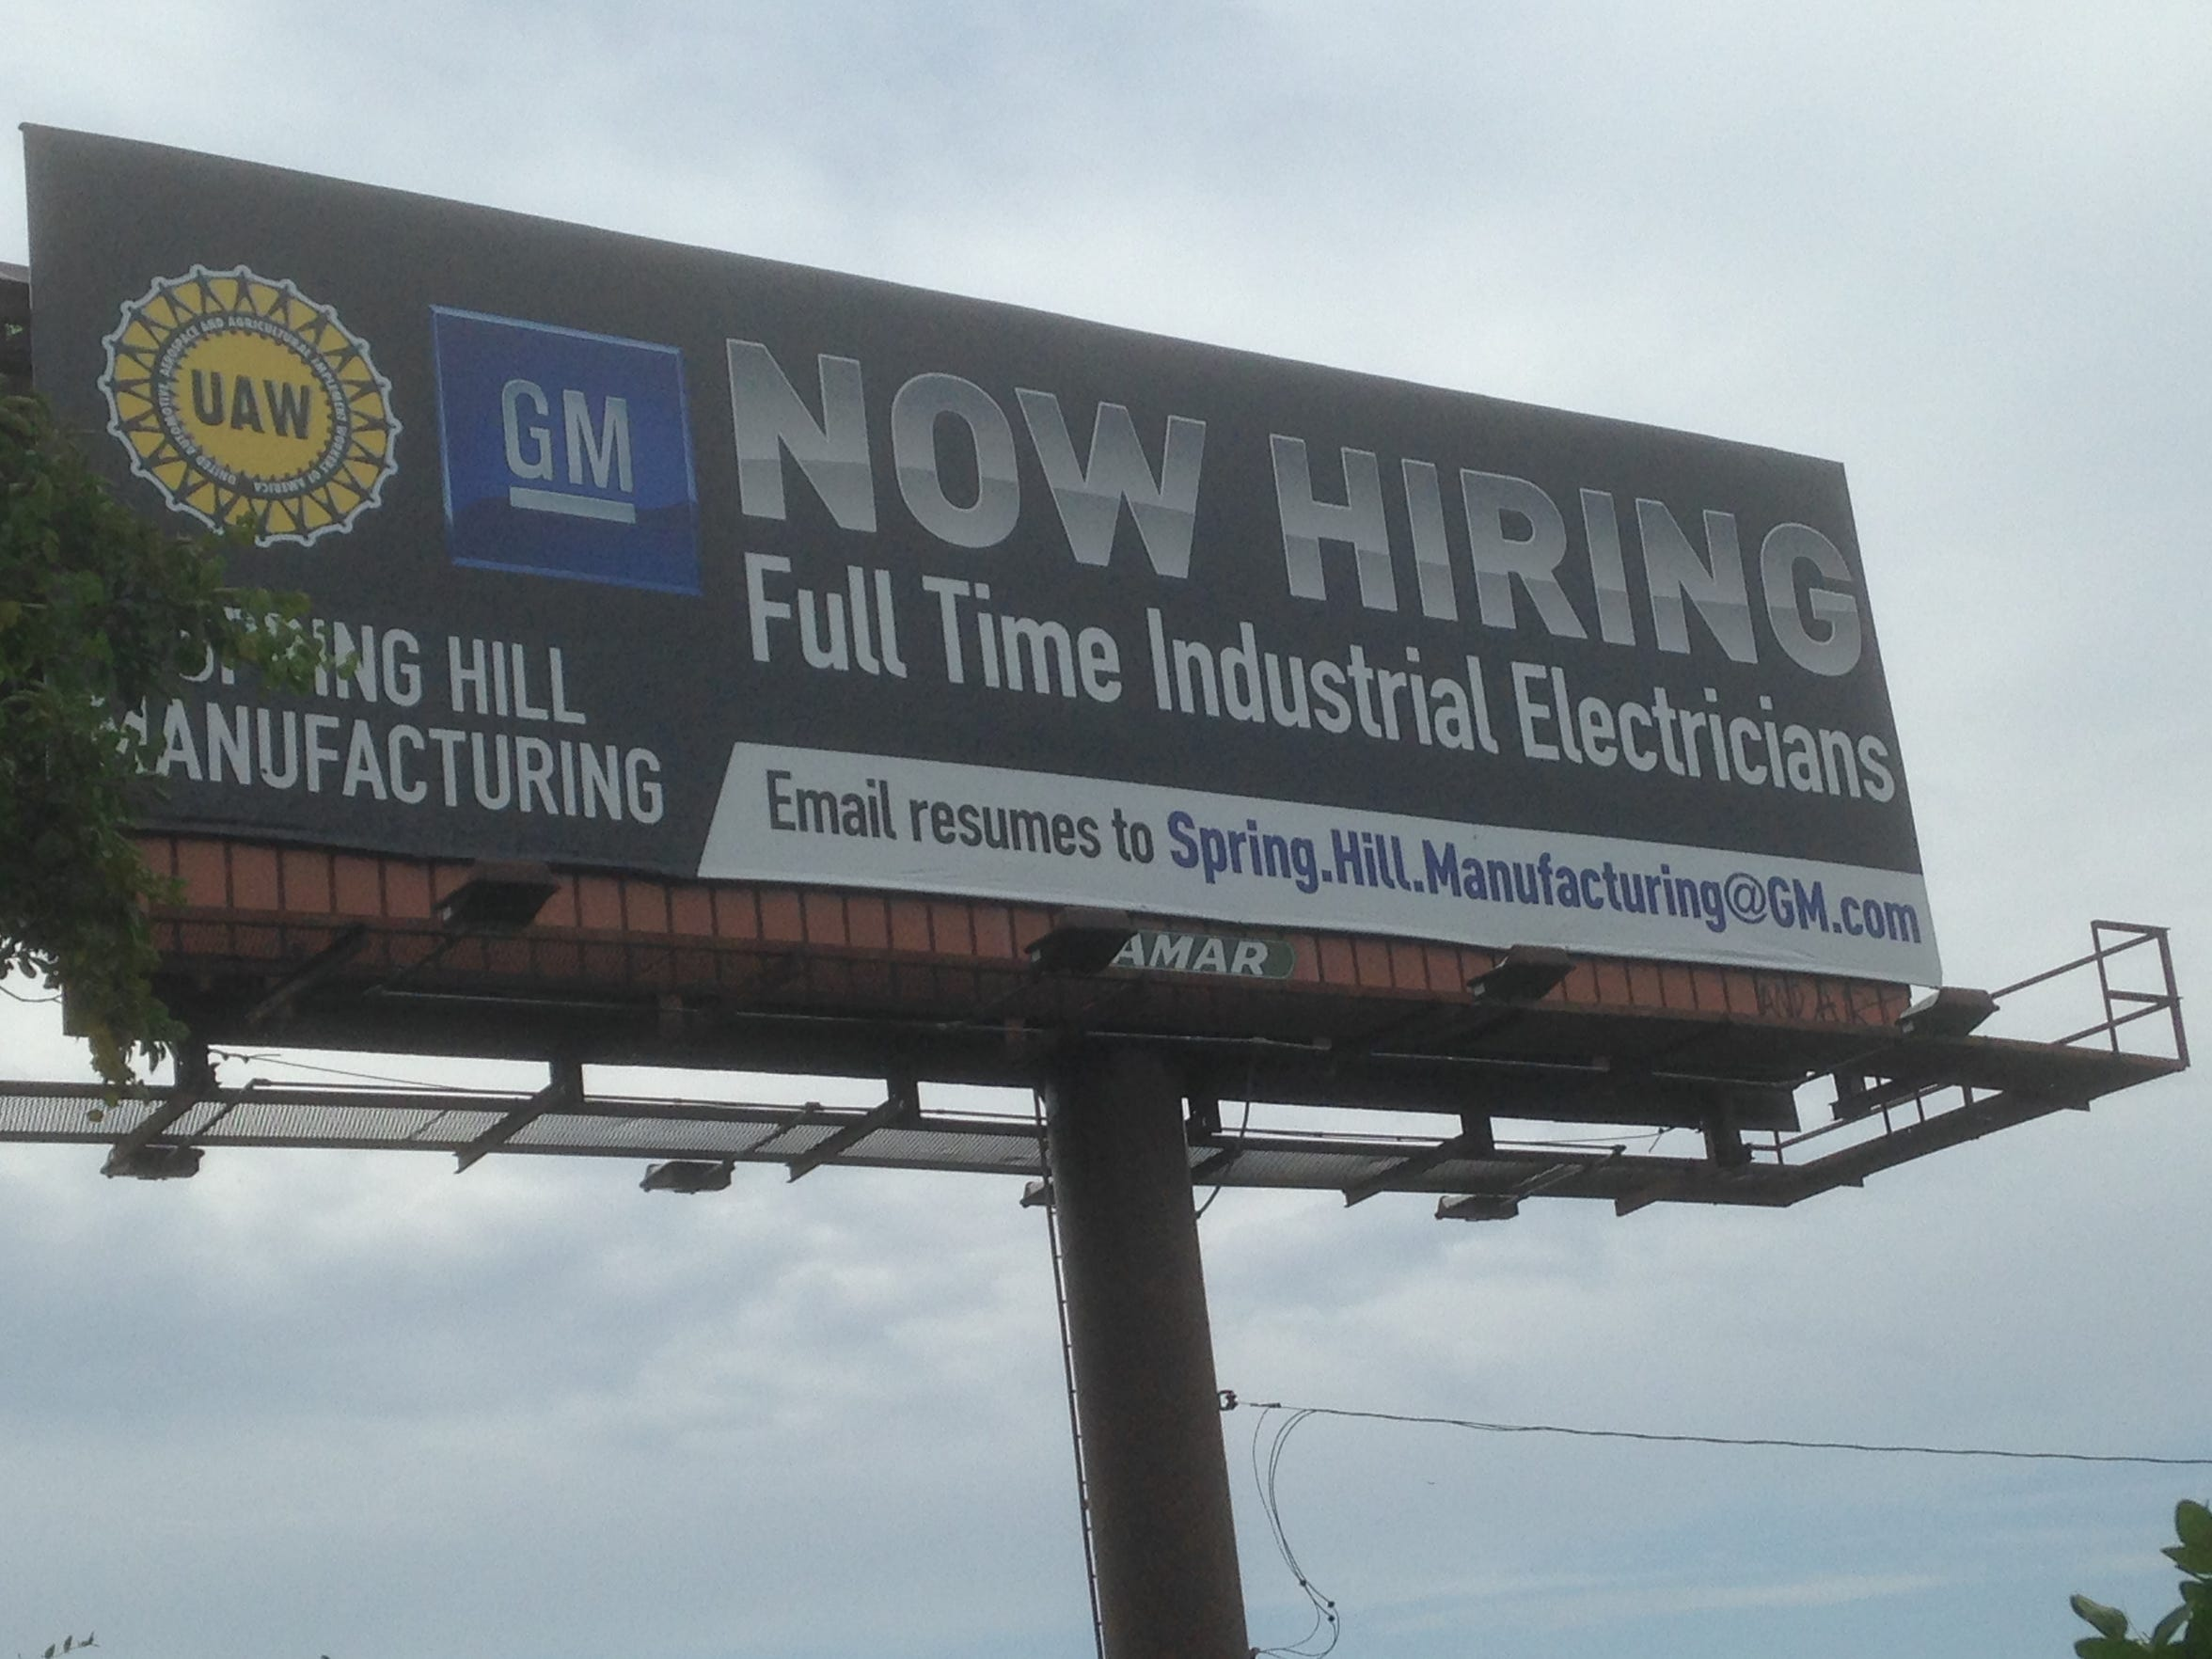 This UAW GM billboard is located on the north side of Lee Victory Parkway about a half mile from the Nissan auto factory in Smyrna. The billboard seeks to attract full-time industrial electricians to the GM factory in Spring Hill.